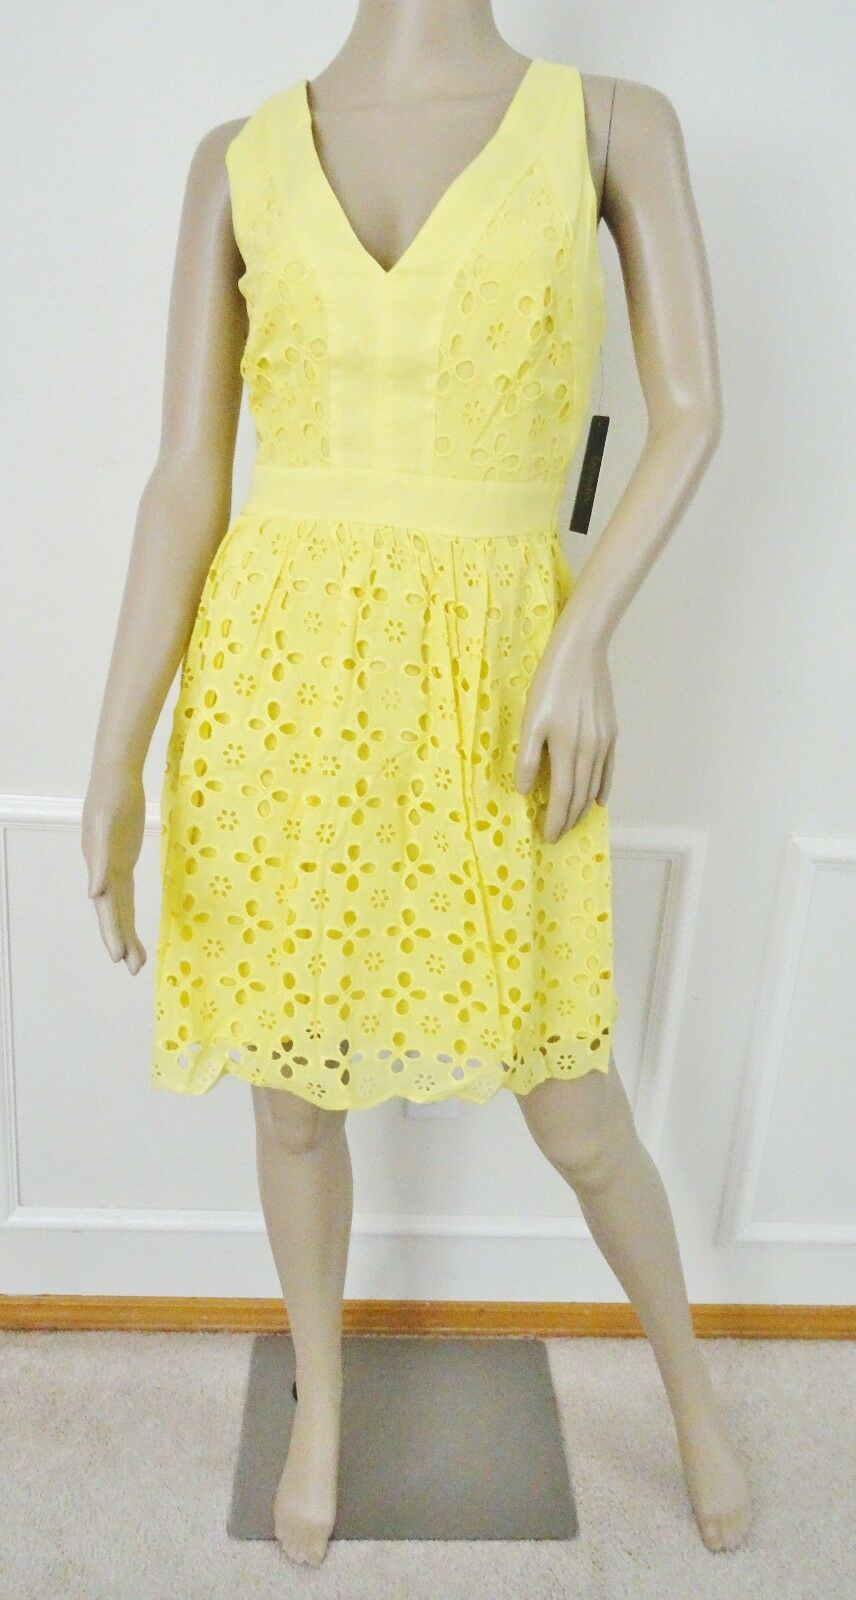 Nwt Laundry by Shelli  Segal Cotton Eyelet Fit Flare Pleated Dress Sz 8 Yellow